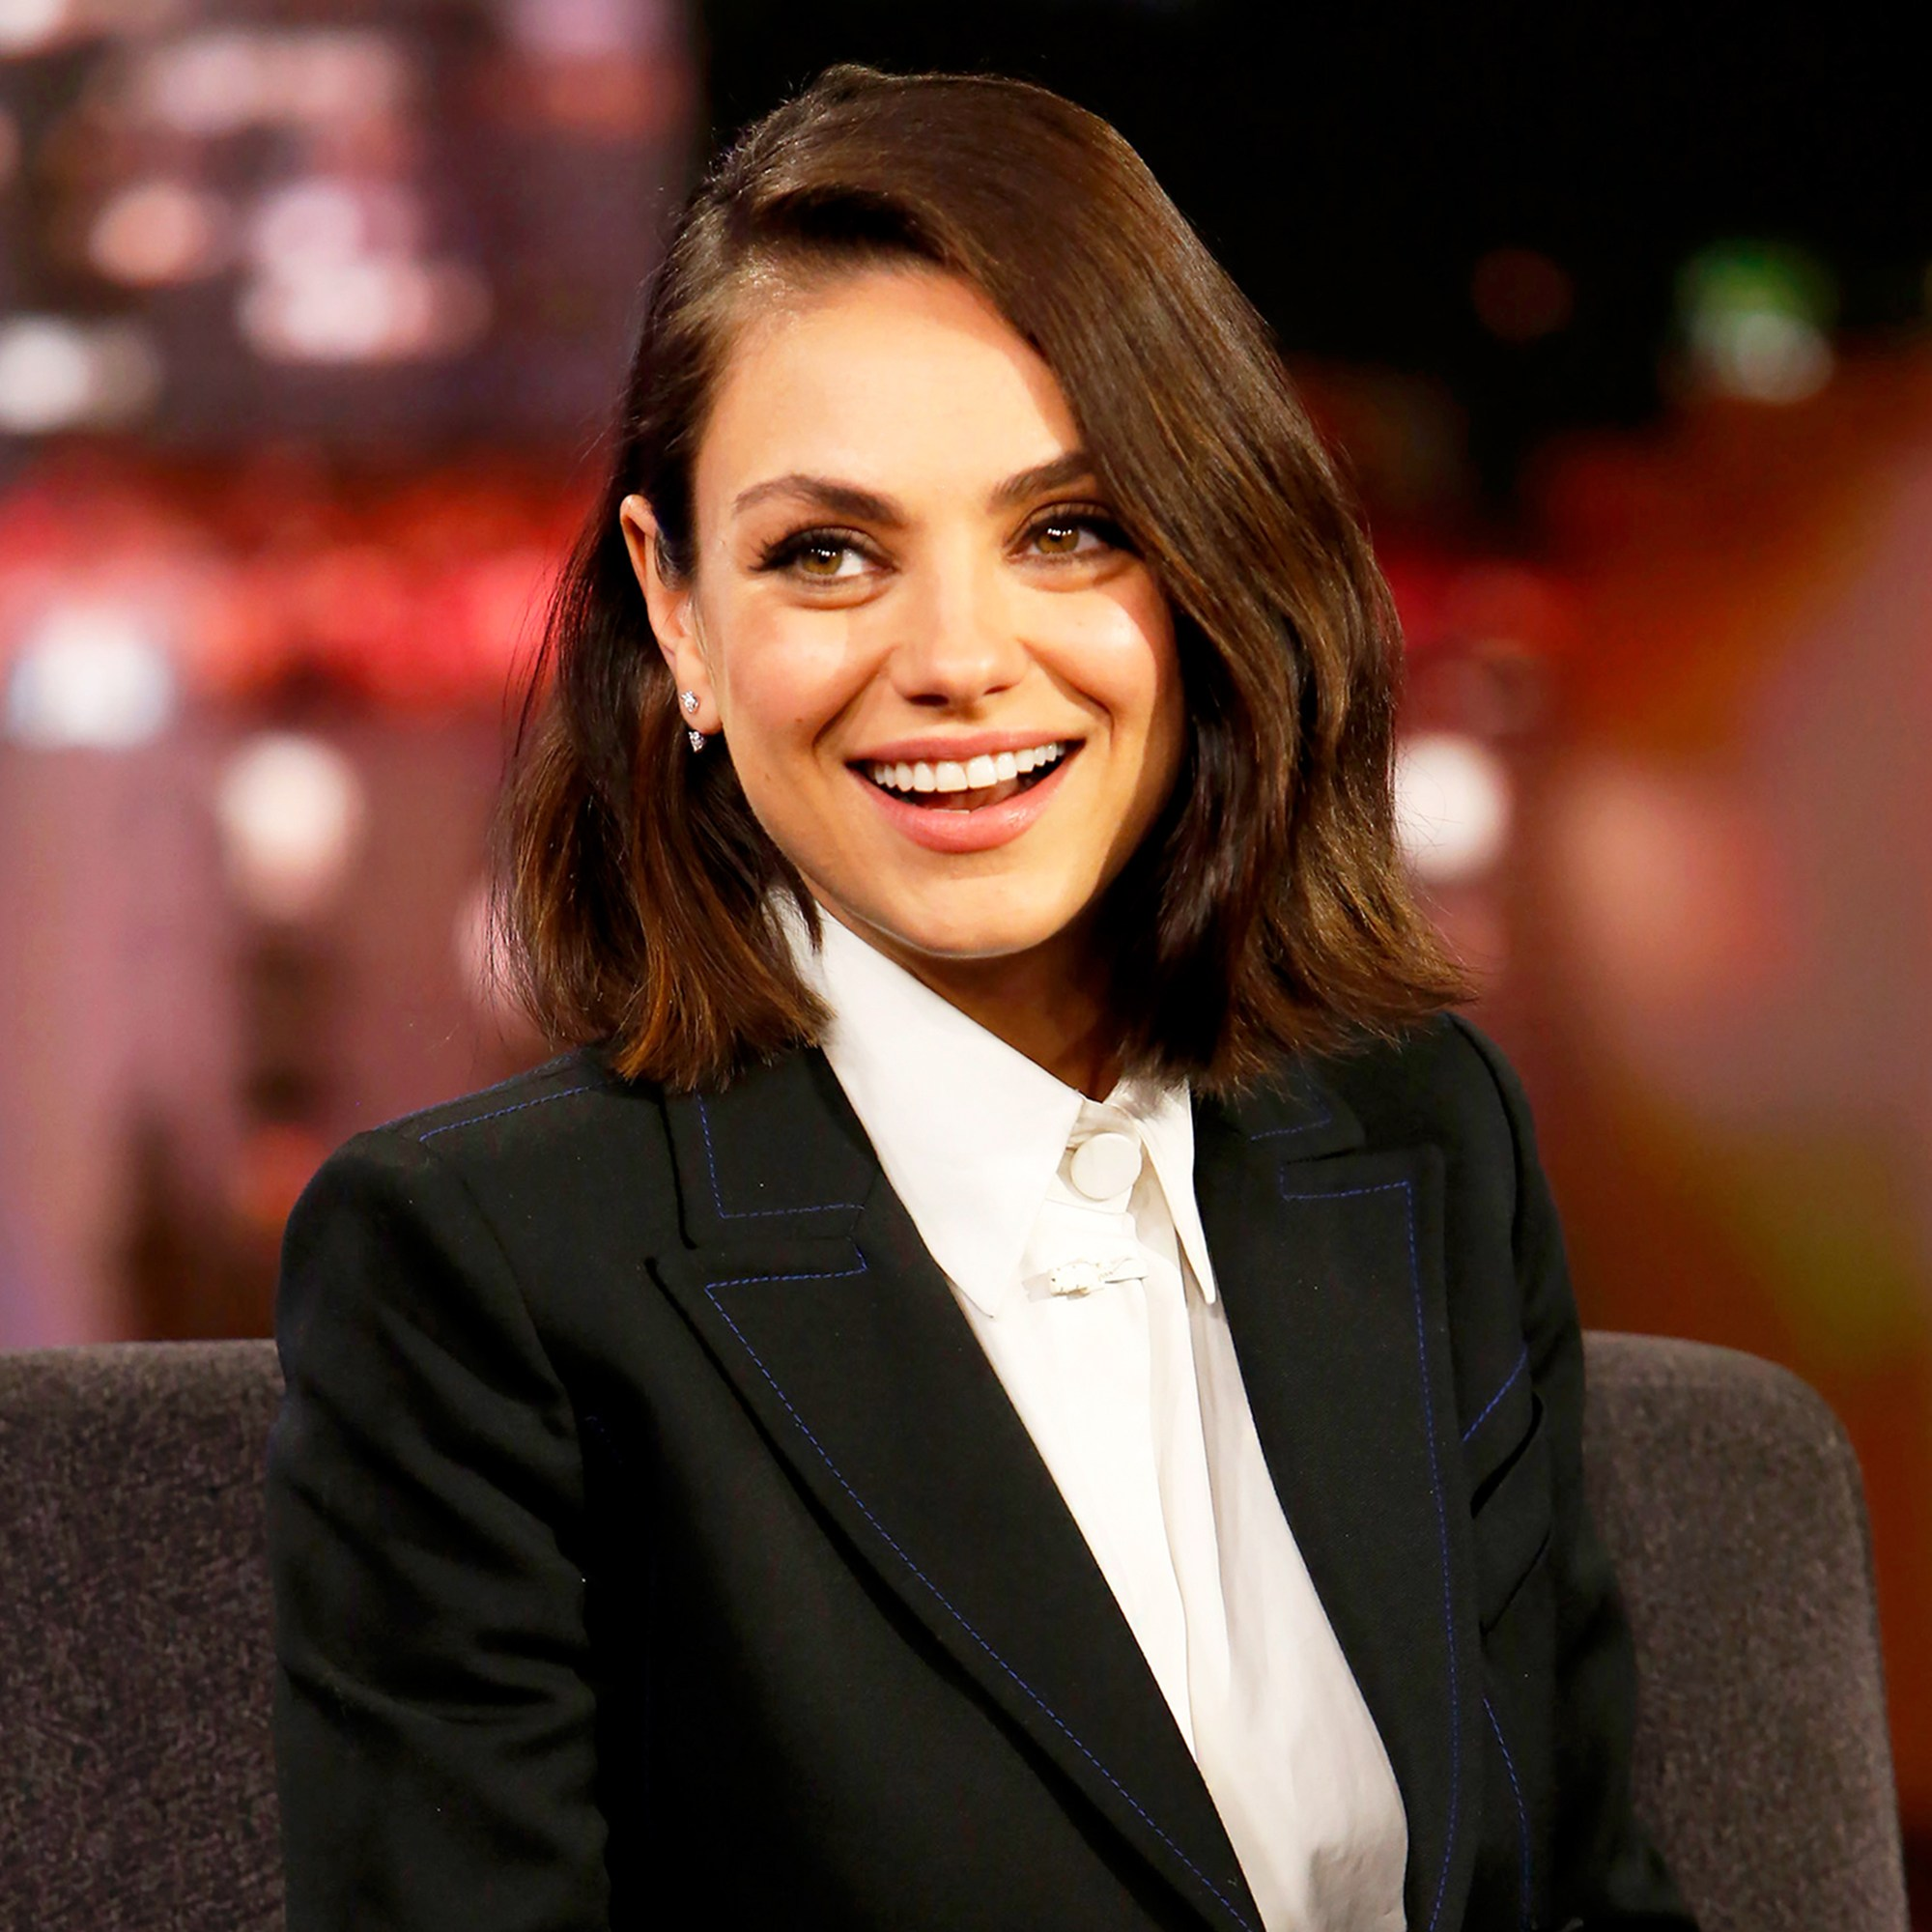 Mila Kunis on ABC's 'Jimmy Kimmel Live'